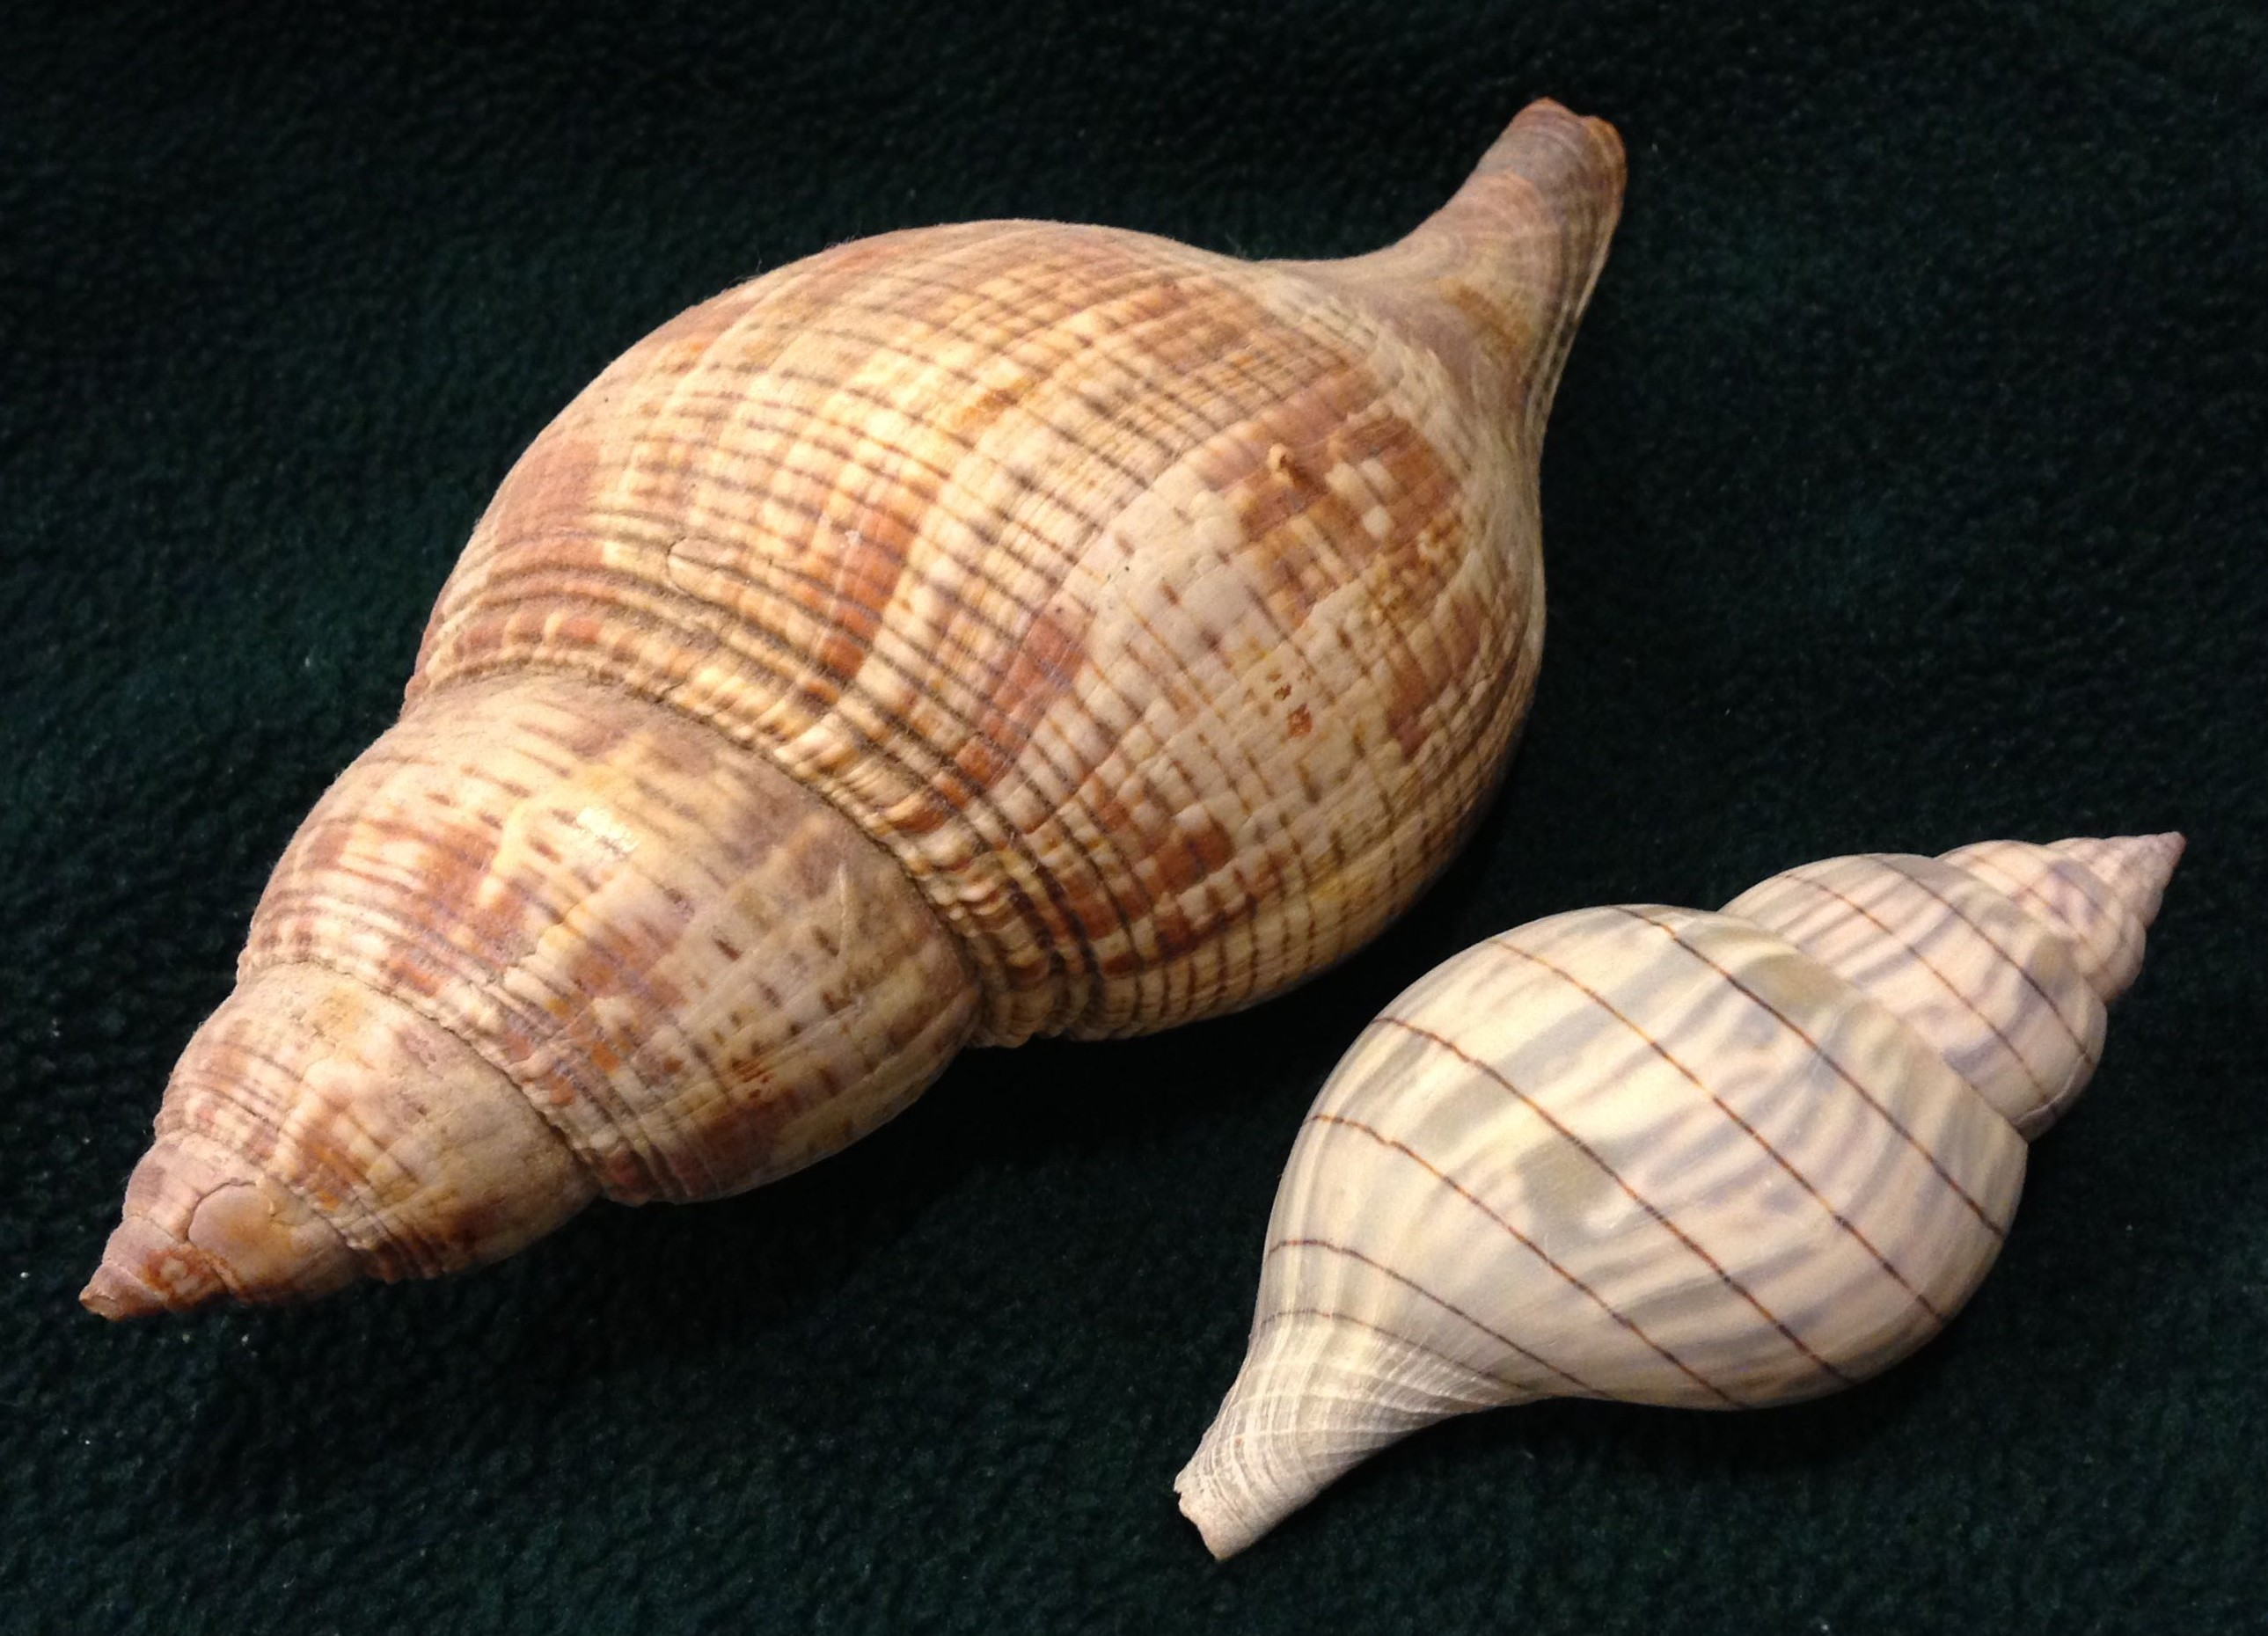 True Tulip & Banded Tulip, 2-28-15, Cayo Costa Island, SeaShell News & Shelling.